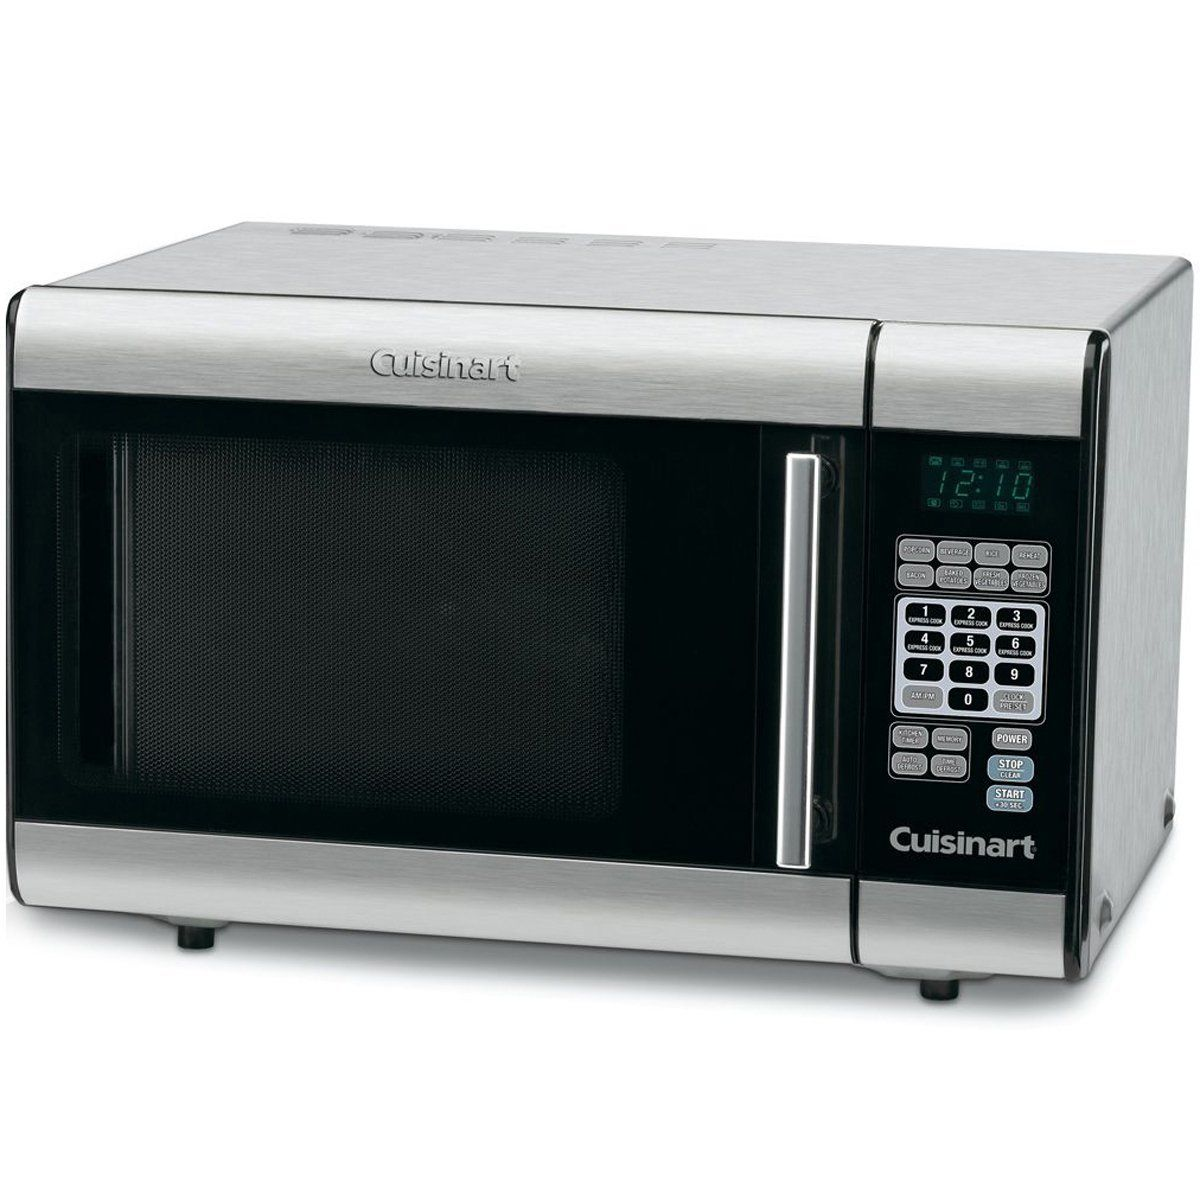 "<p><strong data-redactor-tag=""strong""><i data-redactor-tag=""i""> $122</i></strong> <a href=""https://www.amazon.com/Cuisinart-CMW-100-1-Cubic-Foot-Stainless-Microwave/dp/B000IW9J20?tag=bp_links-20"" data-tracking-id=""recirc-text-link"" target=""_blank"" class=""slide-buy--button"">BUY NOW</a></p><p>You can always count on Cuisinart for quality kitchen appliances. This microwave is no exception, boasting eight preset options with different serving size options for frequently heated foods. </p><p>It has a timer, two defrost functions, and ten customizable power levels for serious versatility. You'll also find a two-stage cooking option, that, for example, would allow you to defrost for a certain amount of time and then automatically switch to regular heating for however long you want. This works for power levels as well, which you can set for certain amounts of time before increasing or decreasing. Plus, you can set custom cook times using the memory function, kind of like pre-setting radio stations in your car! </p>"